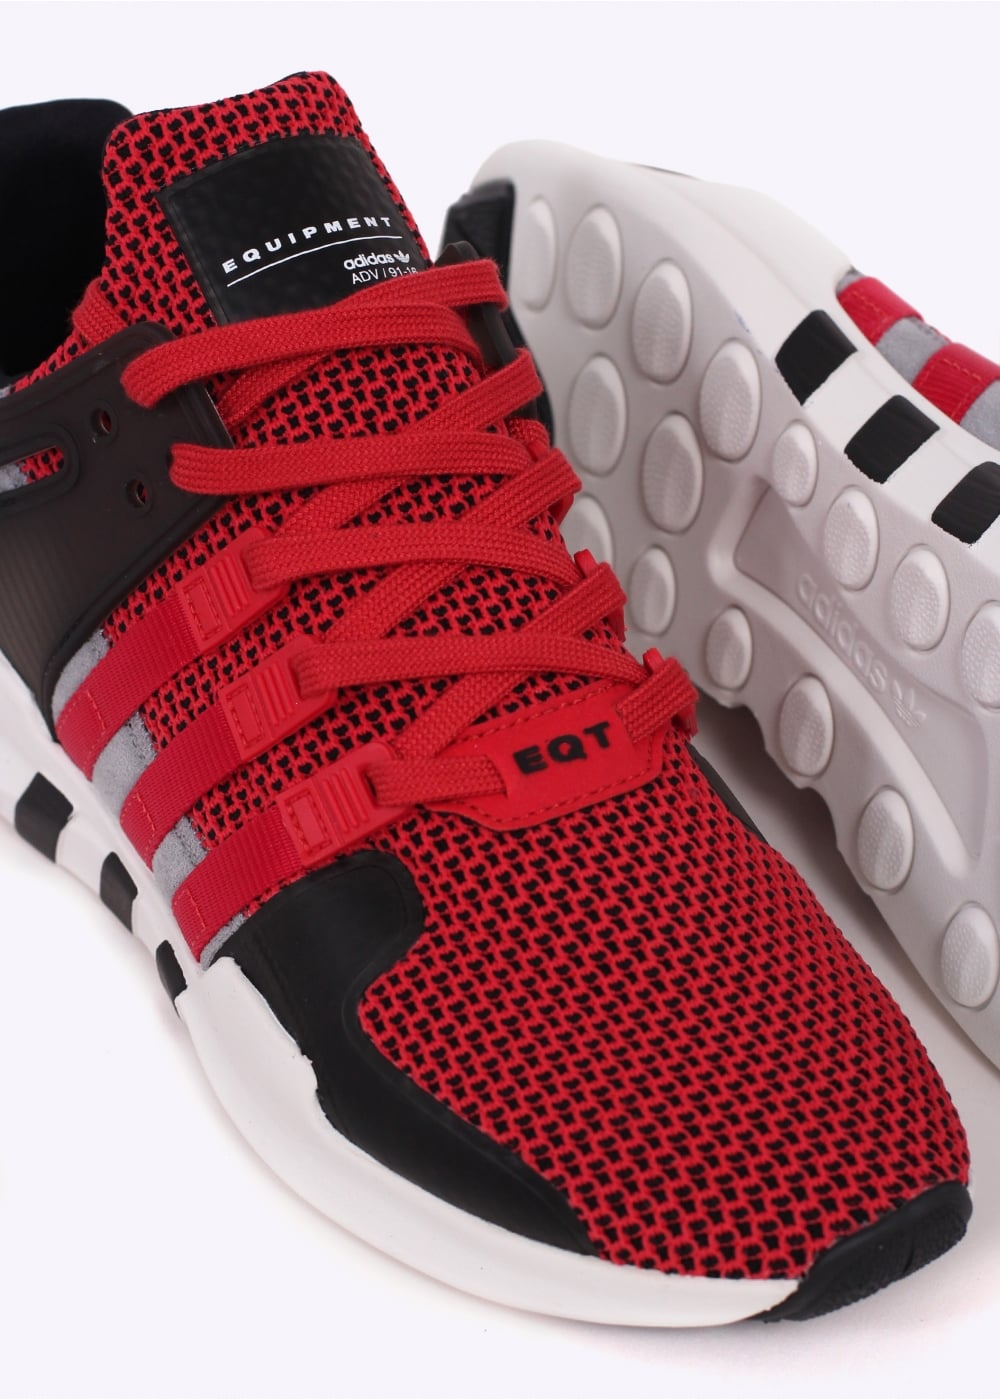 newest collection fa412 0871a adidas Originals Footwear Equipment Support ADV Textile - Collegiate Red /  Black